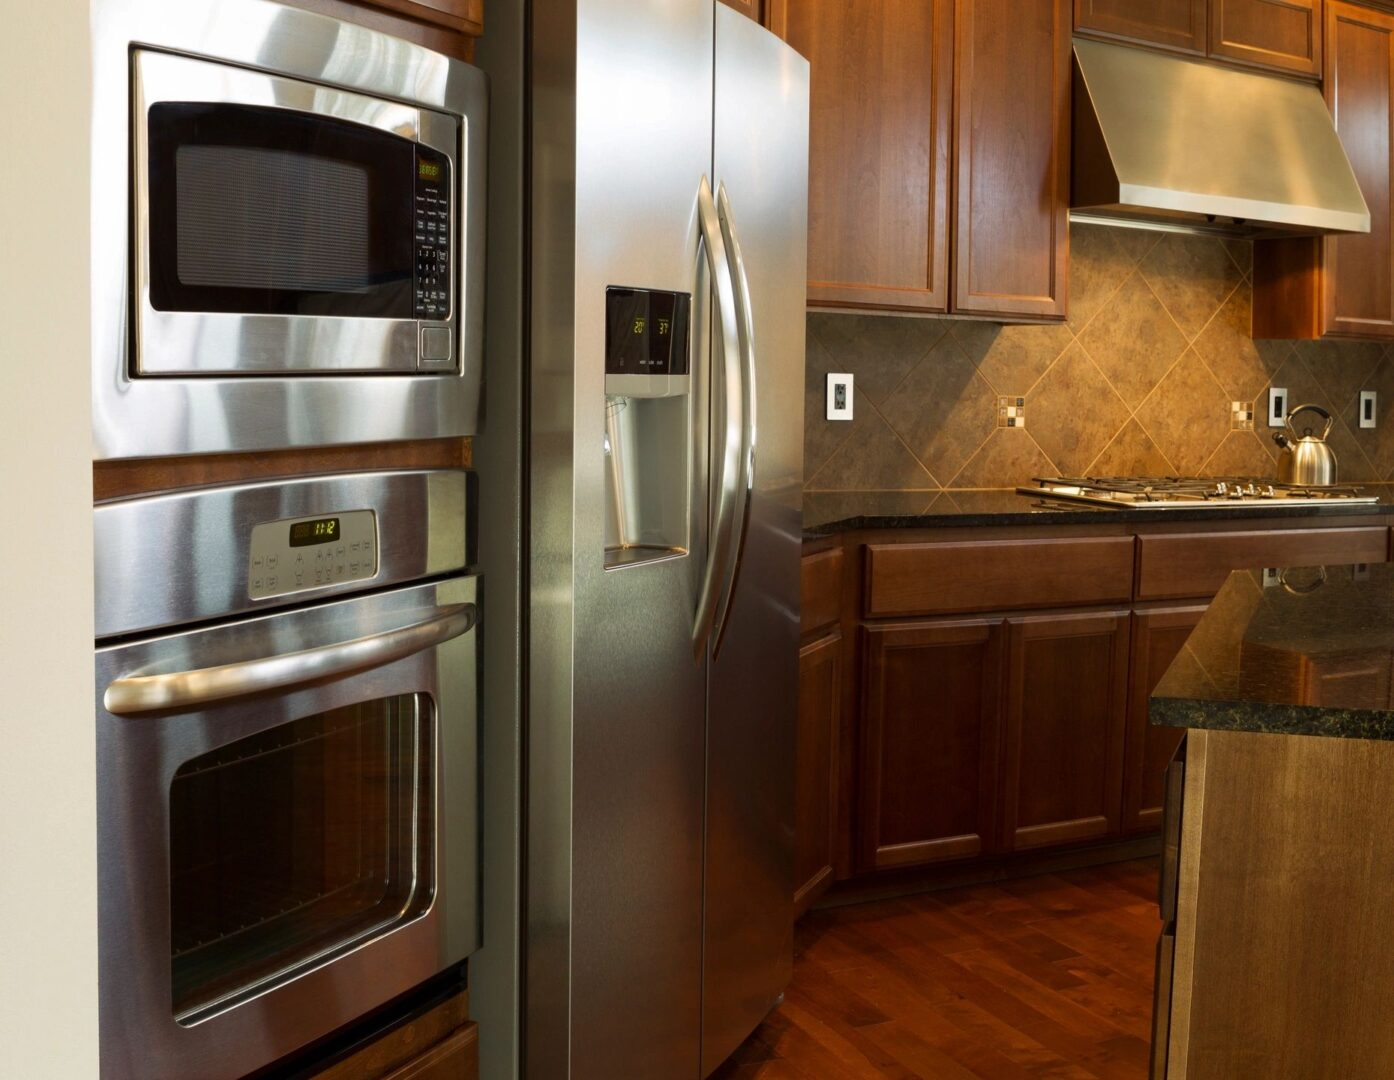 Stainless Stell Refridgerator and Stove